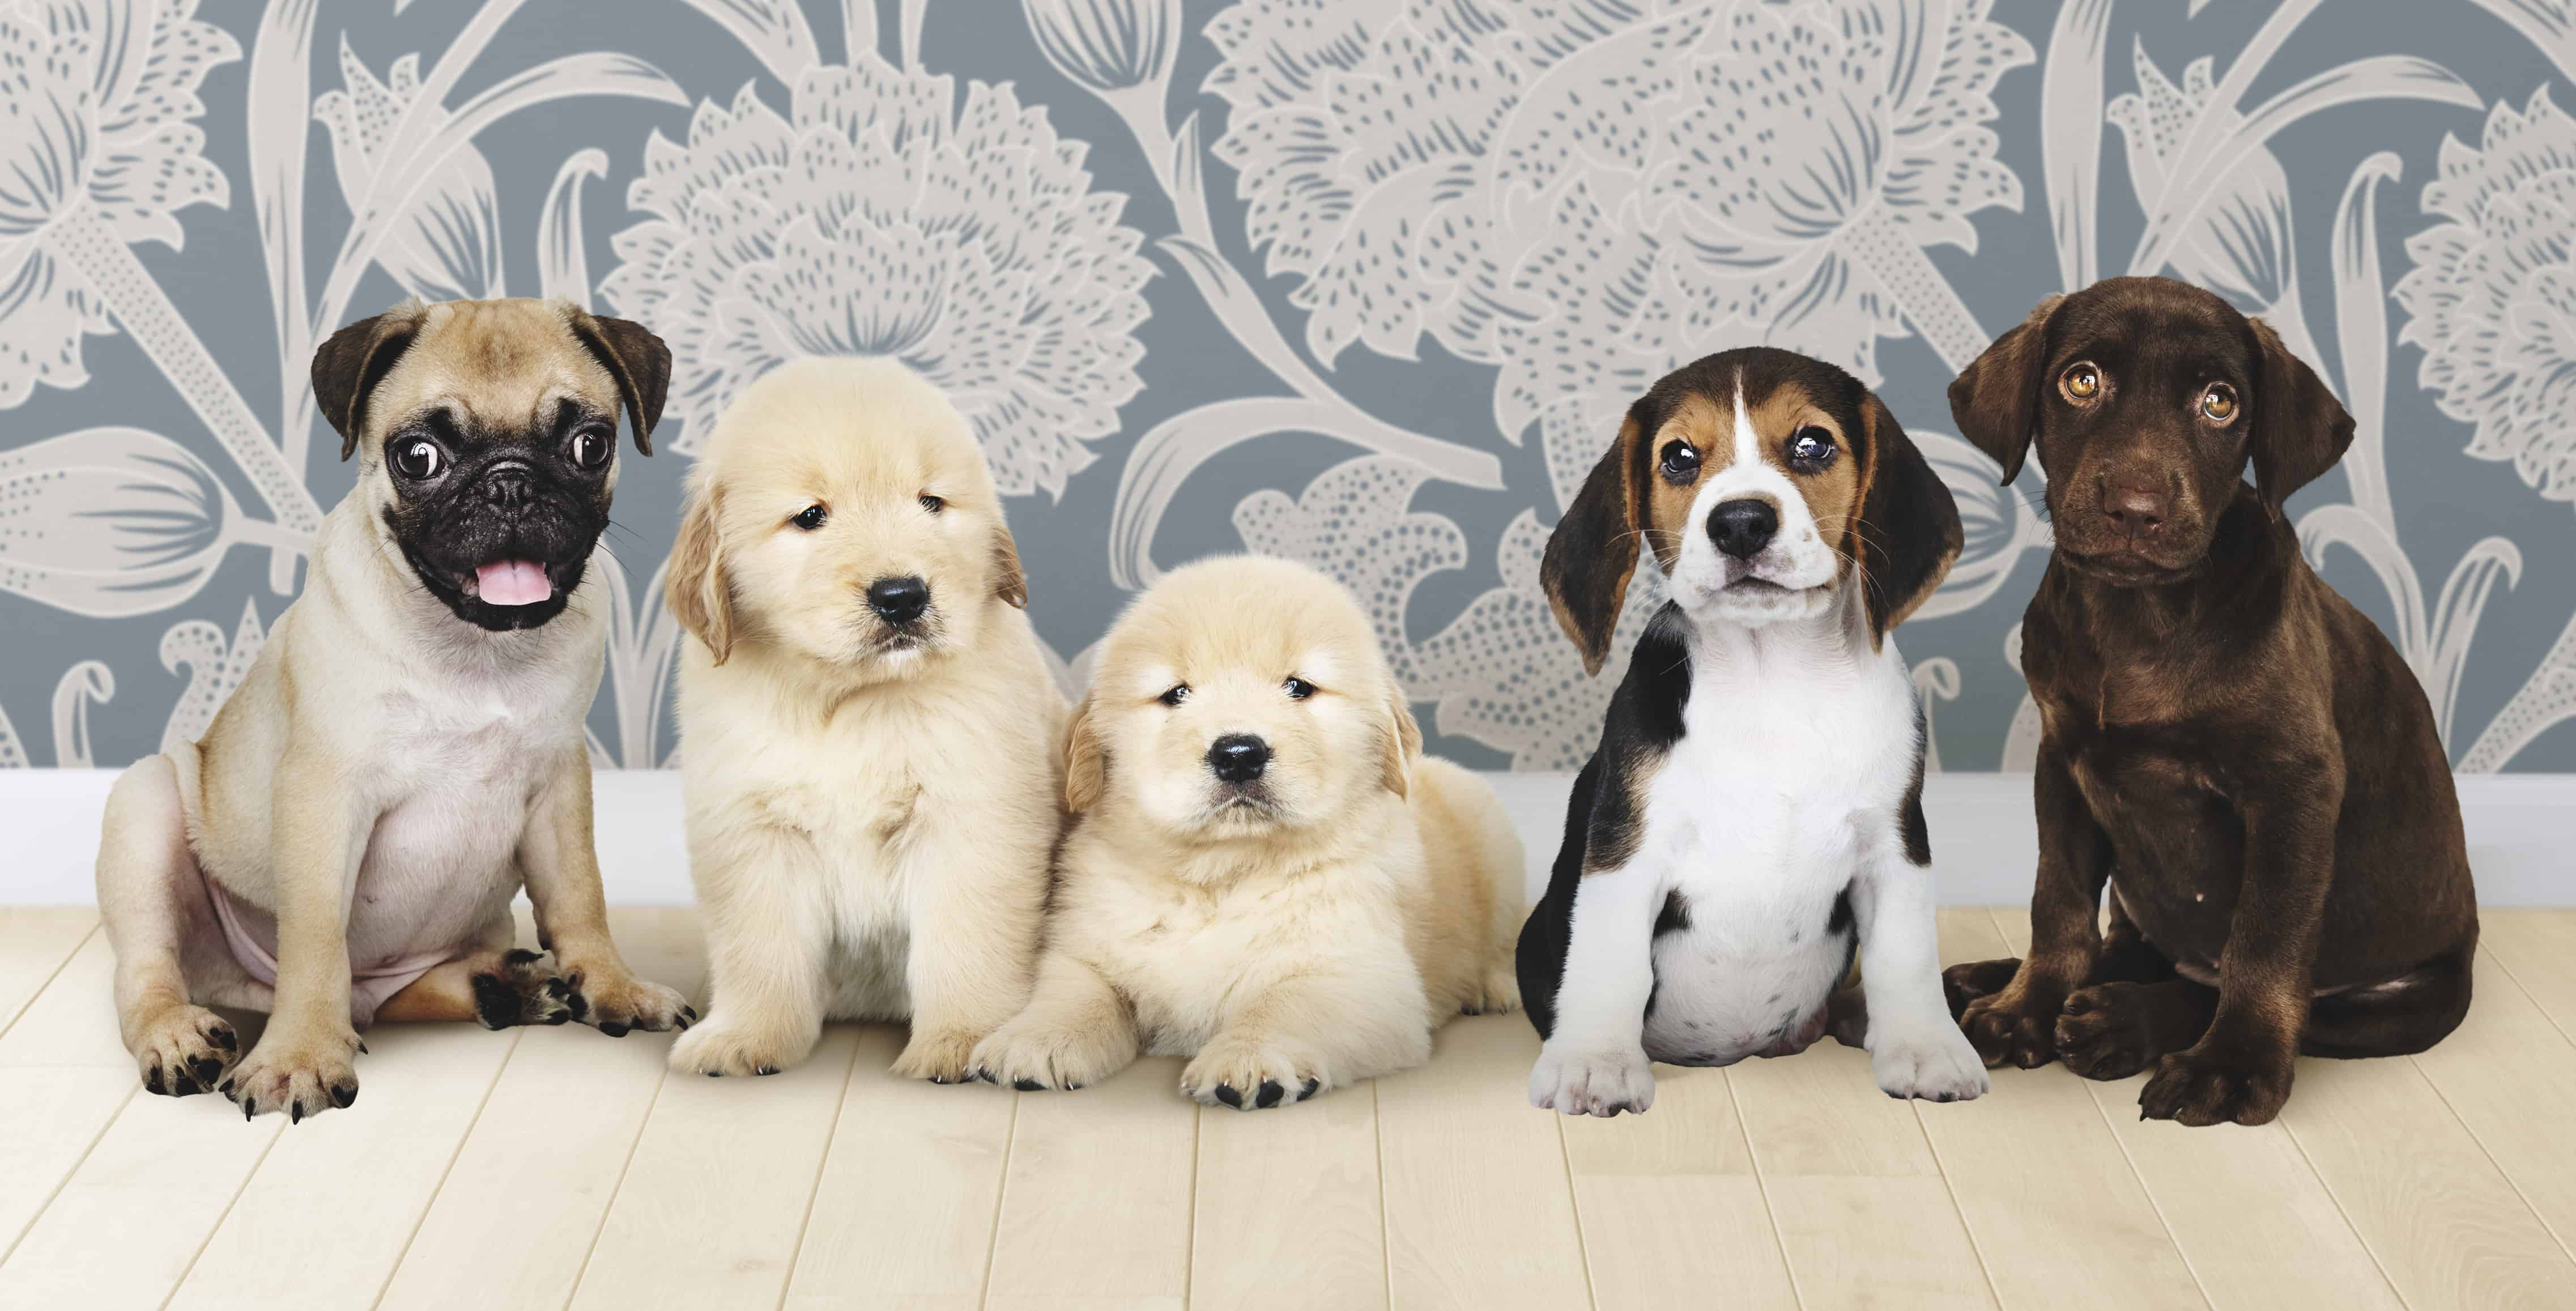 Group portrait adorable puppies